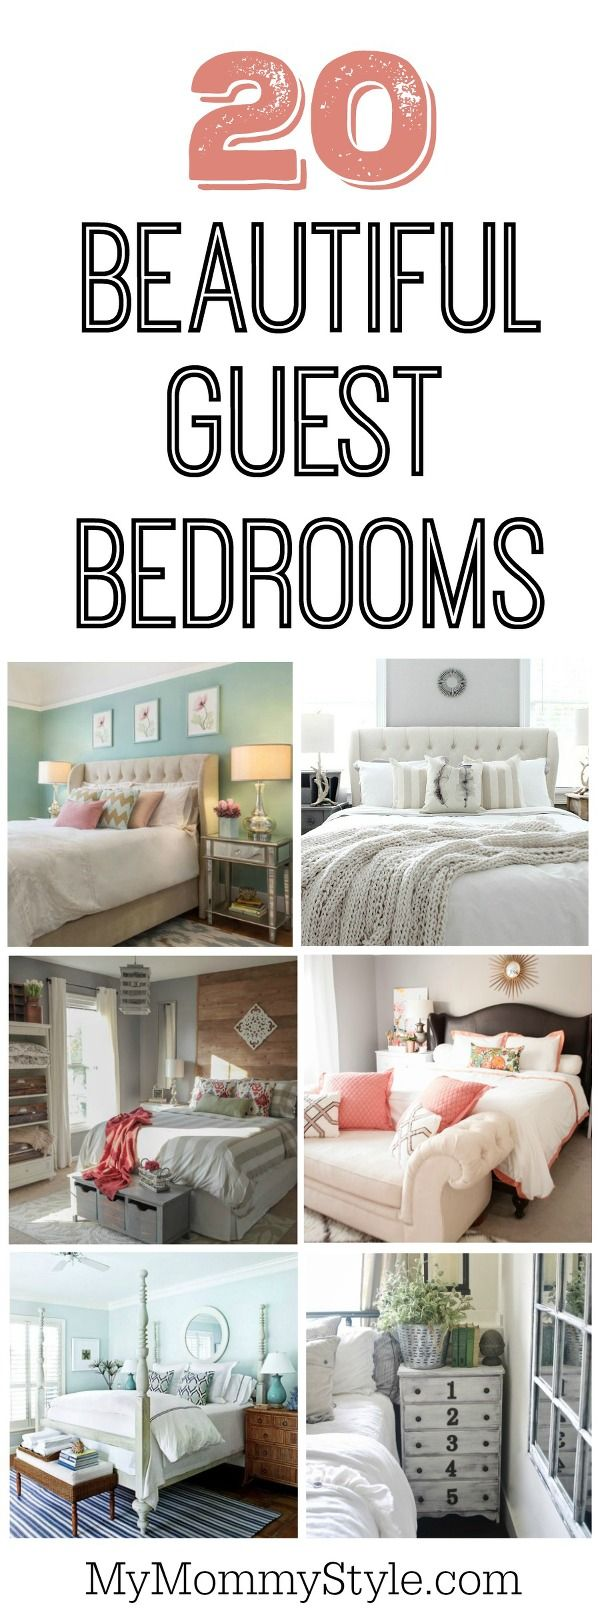 Bedroom And More best 25+ guest bedrooms ideas on pinterest | guest rooms, spare